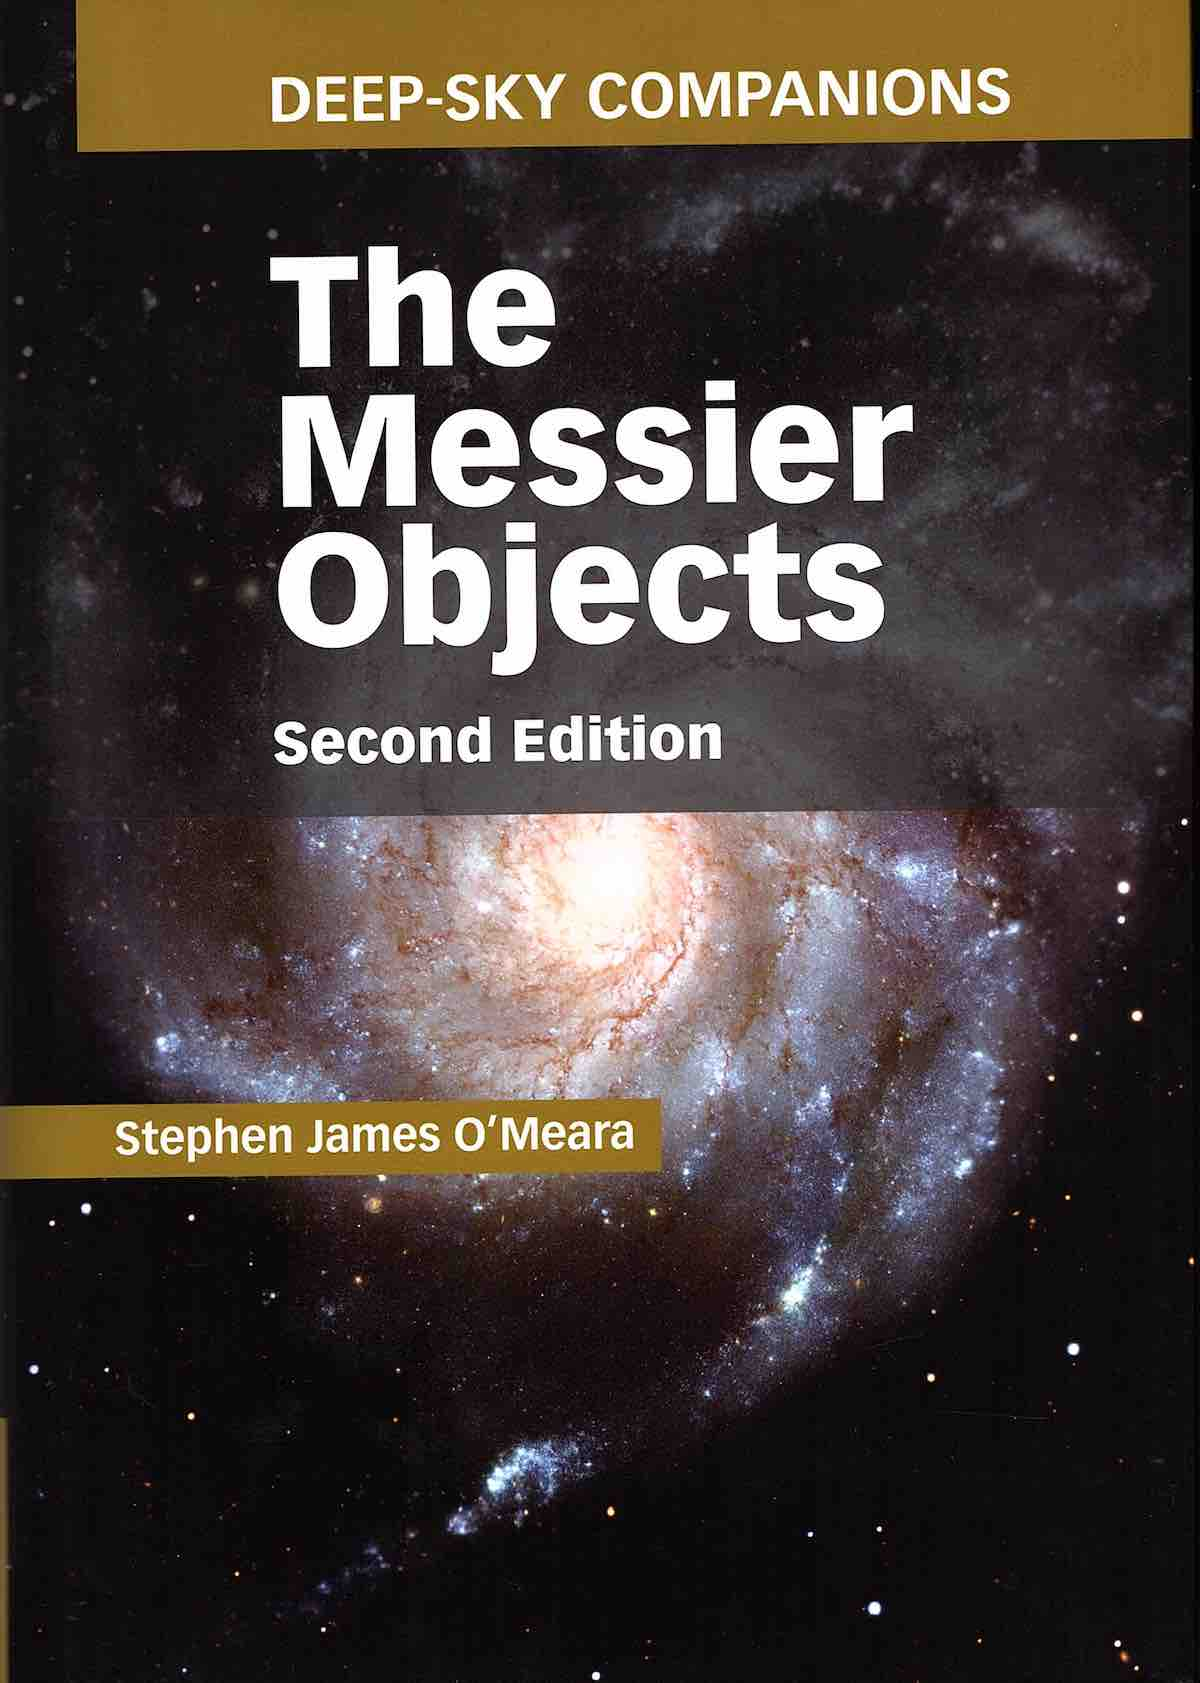 Deep-Sky Companions: The Messier Objects, Second Edition